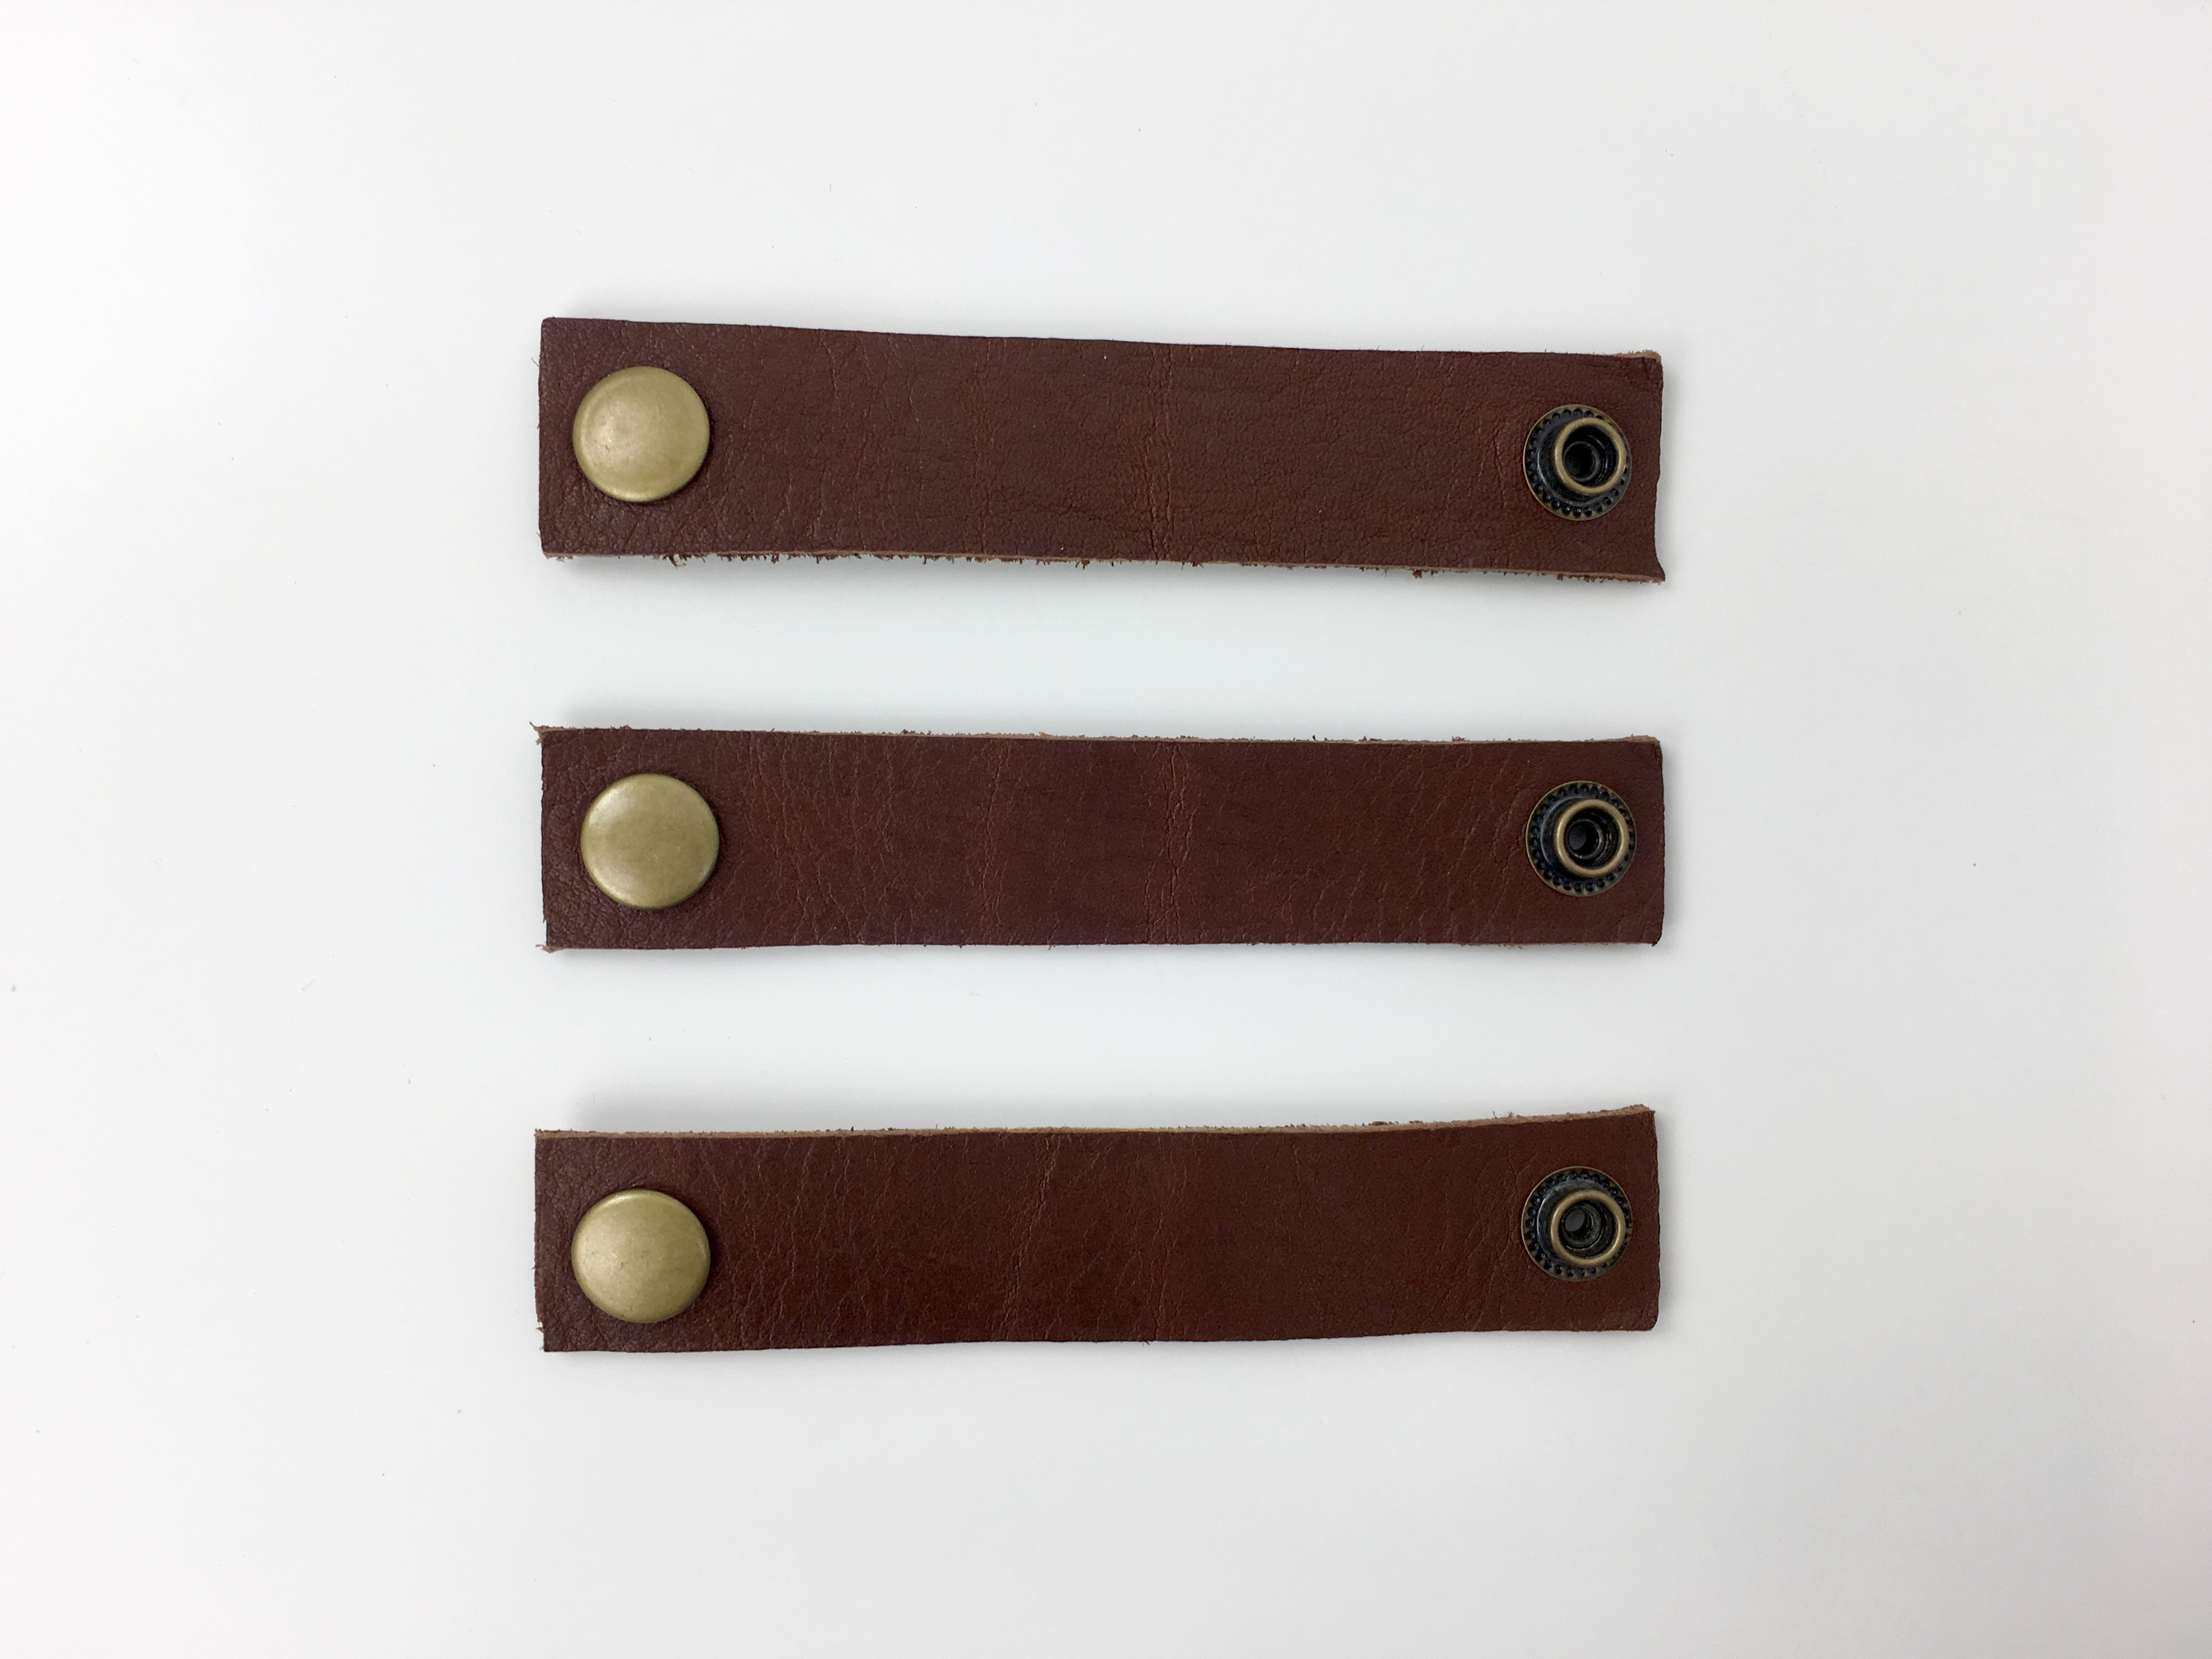 set of 3 leather cord keepers